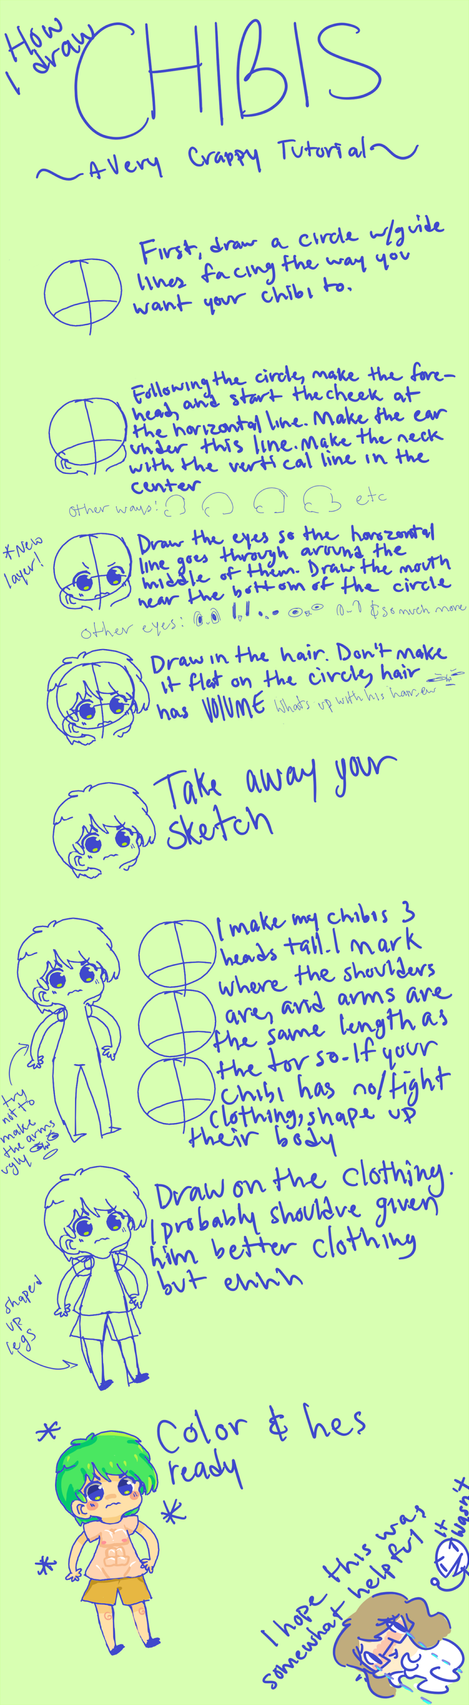 A crappy tutorial by durr-hurrhurr